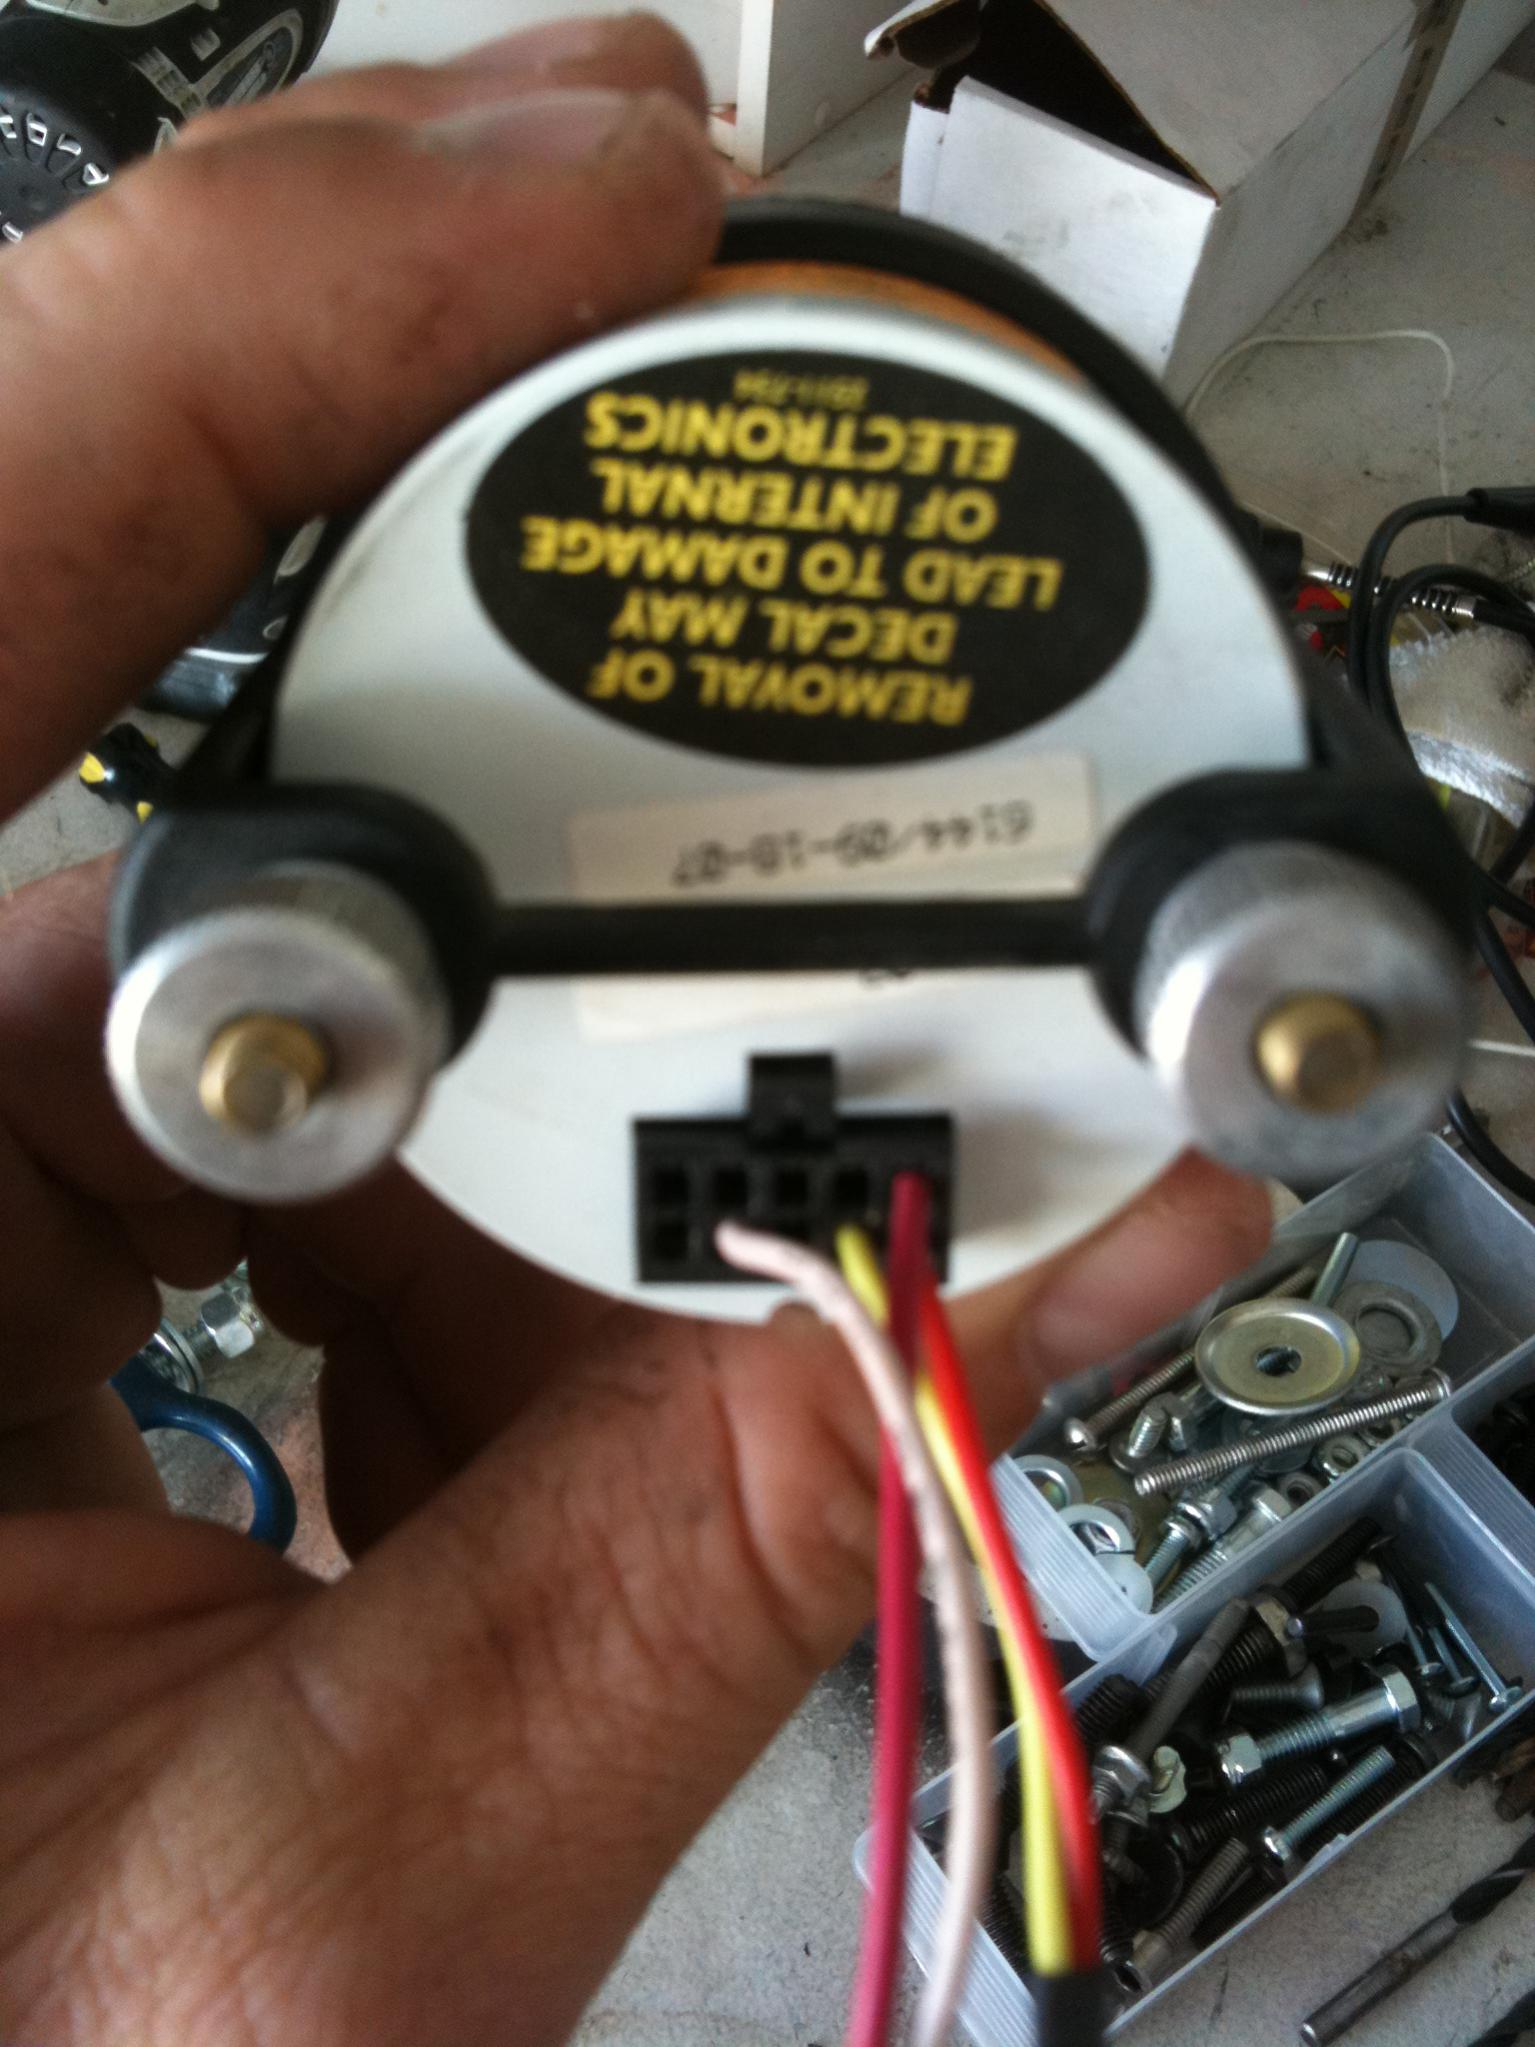 Help! Cobalt Autometer Pyro - Dodge mins Diesel Forum on nos wiring, battery relocation wiring, auto meter tach wiring, hei distributor wiring, mopar ecu wiring, ford wiring, line lock wiring, bosch wiring, gear vendors wiring, denso wiring, mark viii fan wiring, tow ready wiring, apexi neo wiring, aeromotive wiring, 3g alternator wiring, mallory wiring,